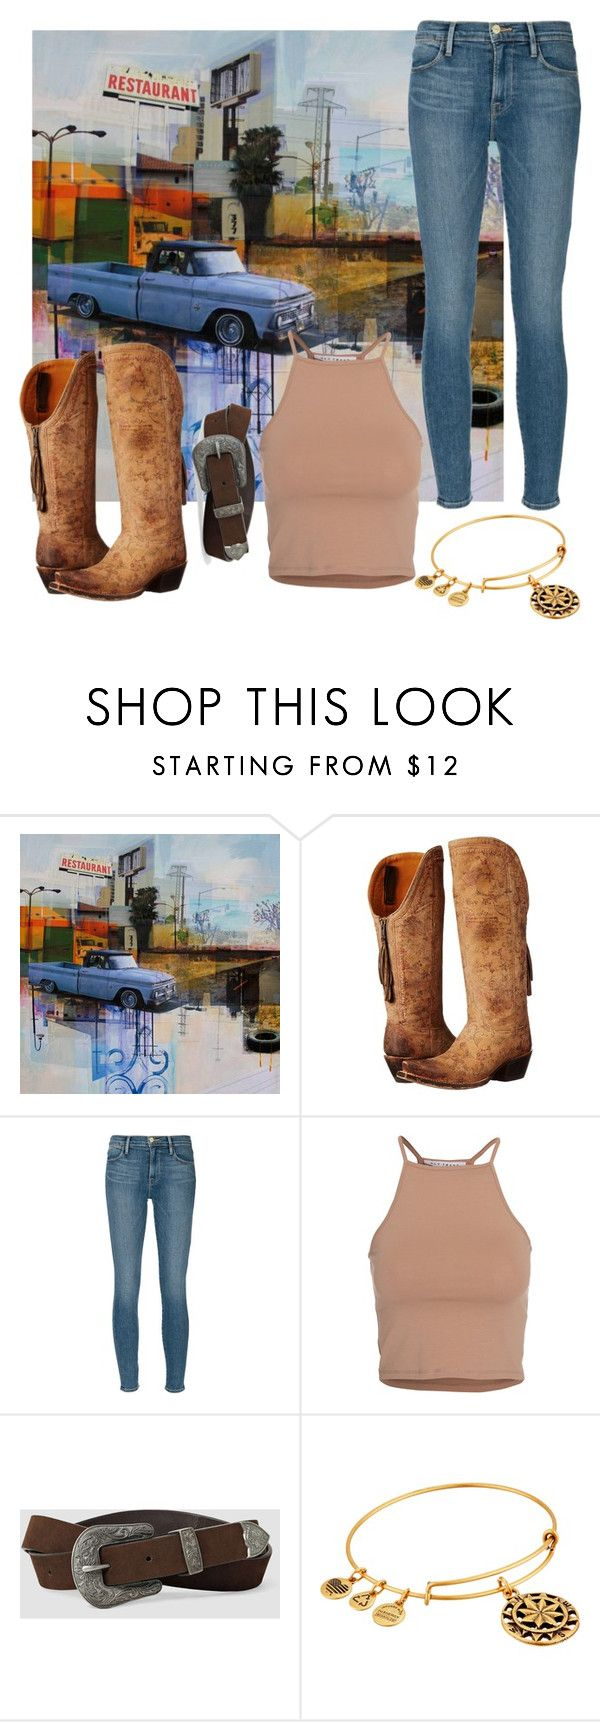 """""""walk on the wild side"""" by marypxppins ❤ liked on Polyvore featuring Lucchese, Frame, NLY Trend, AllSaints and Alex and Ani"""